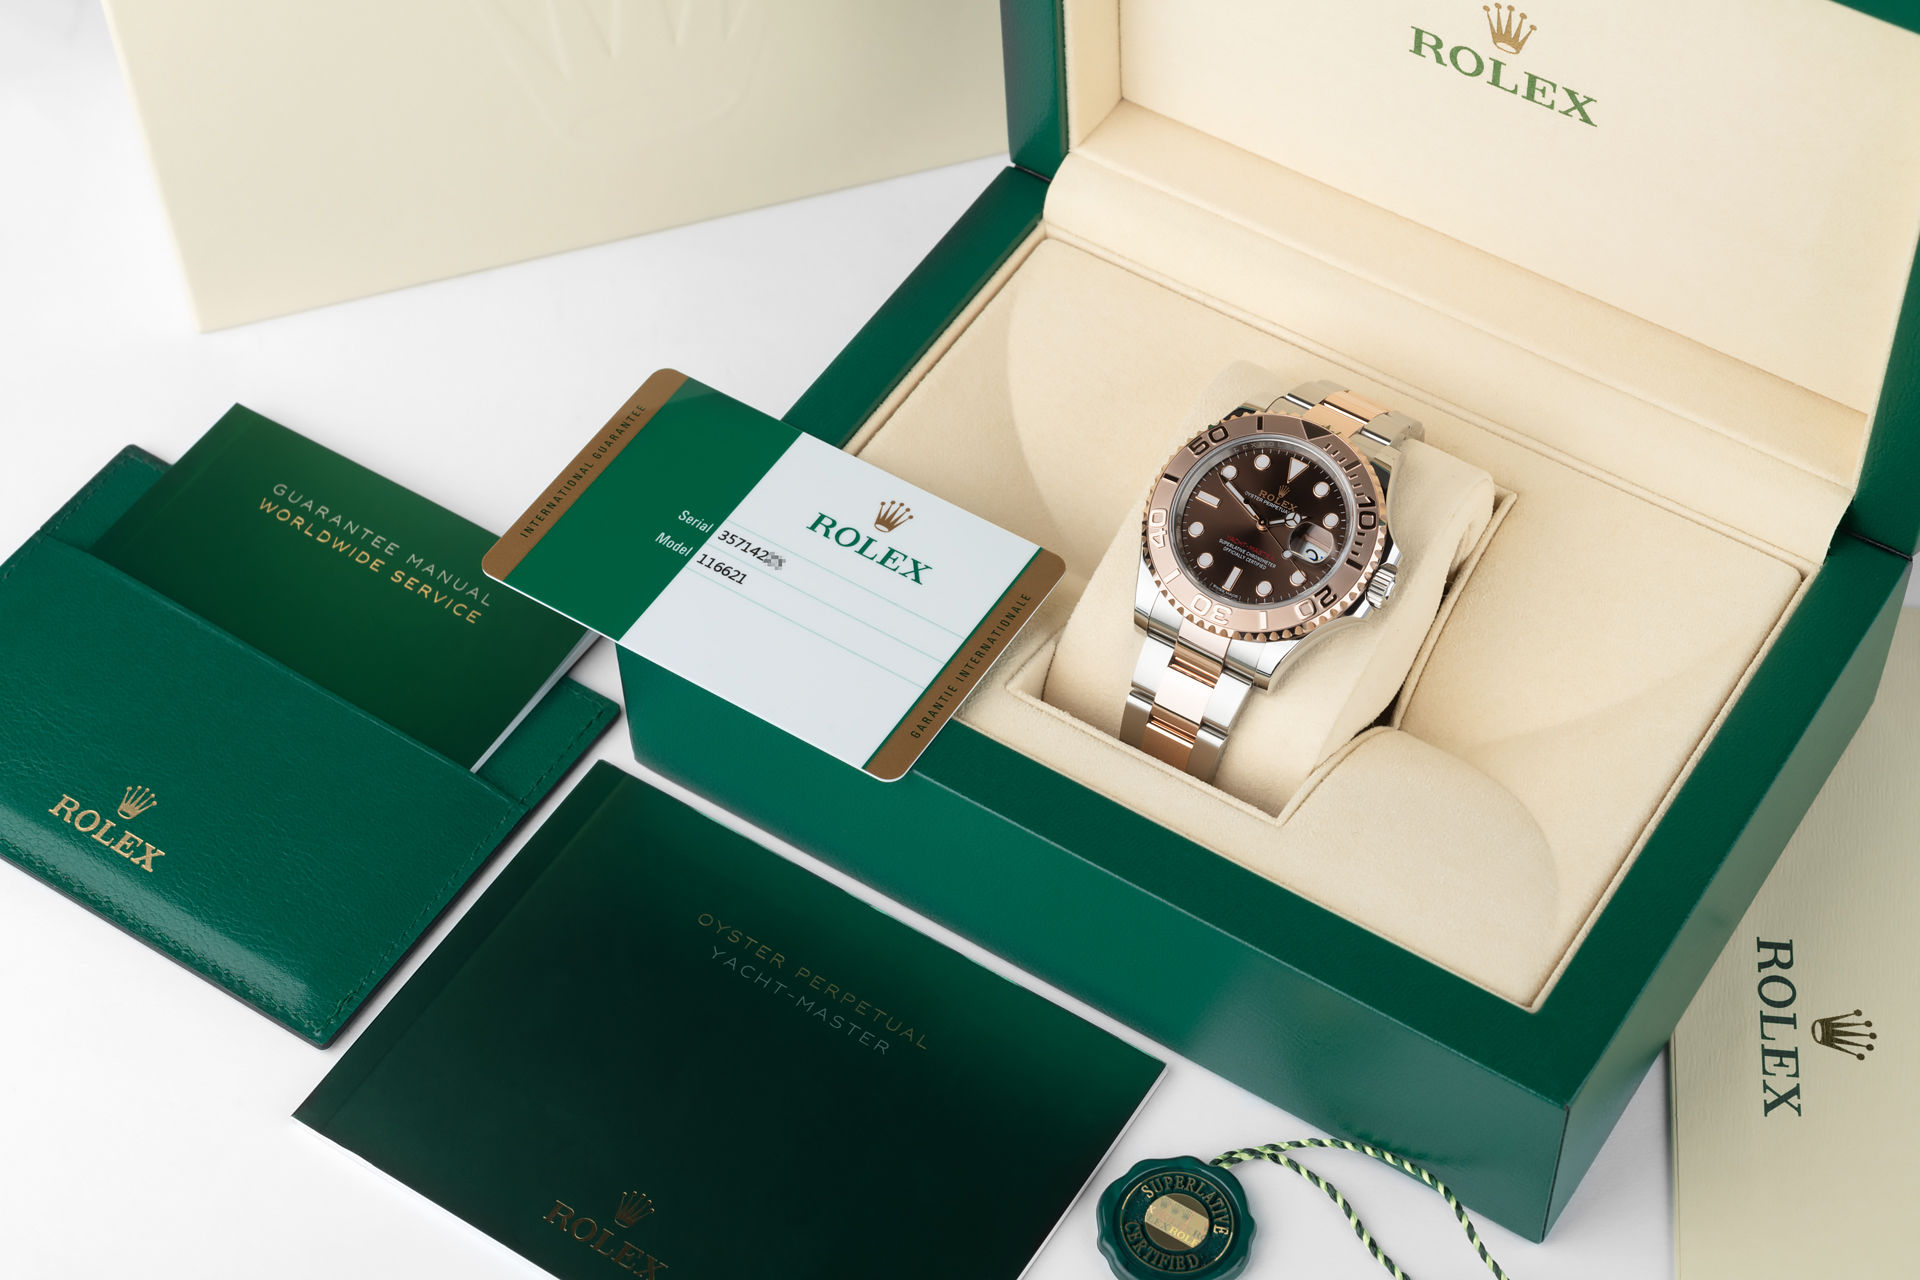 ref 116621 | Everose & Steel '5 Year Warranty' | Rolex Yacht-Master